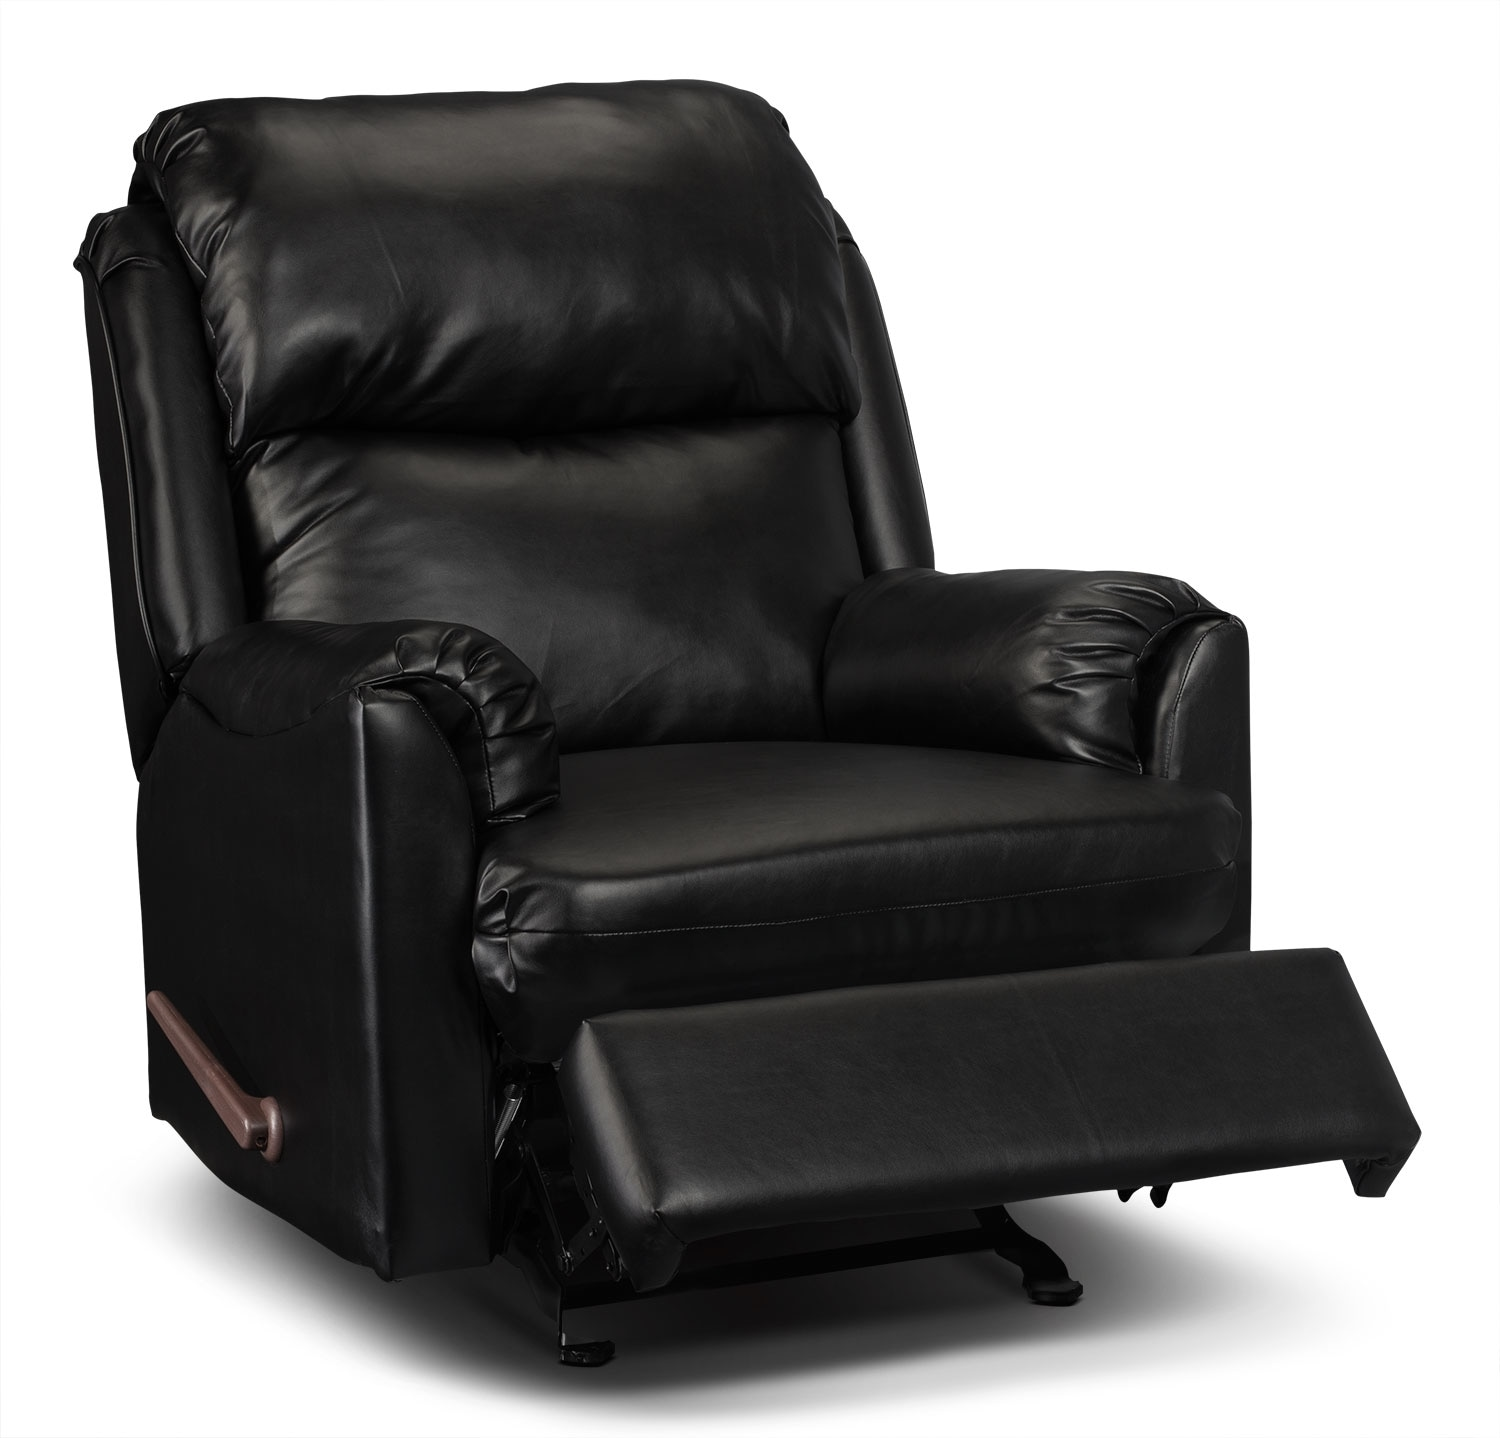 Drogba Faux Leather Recliner - Black